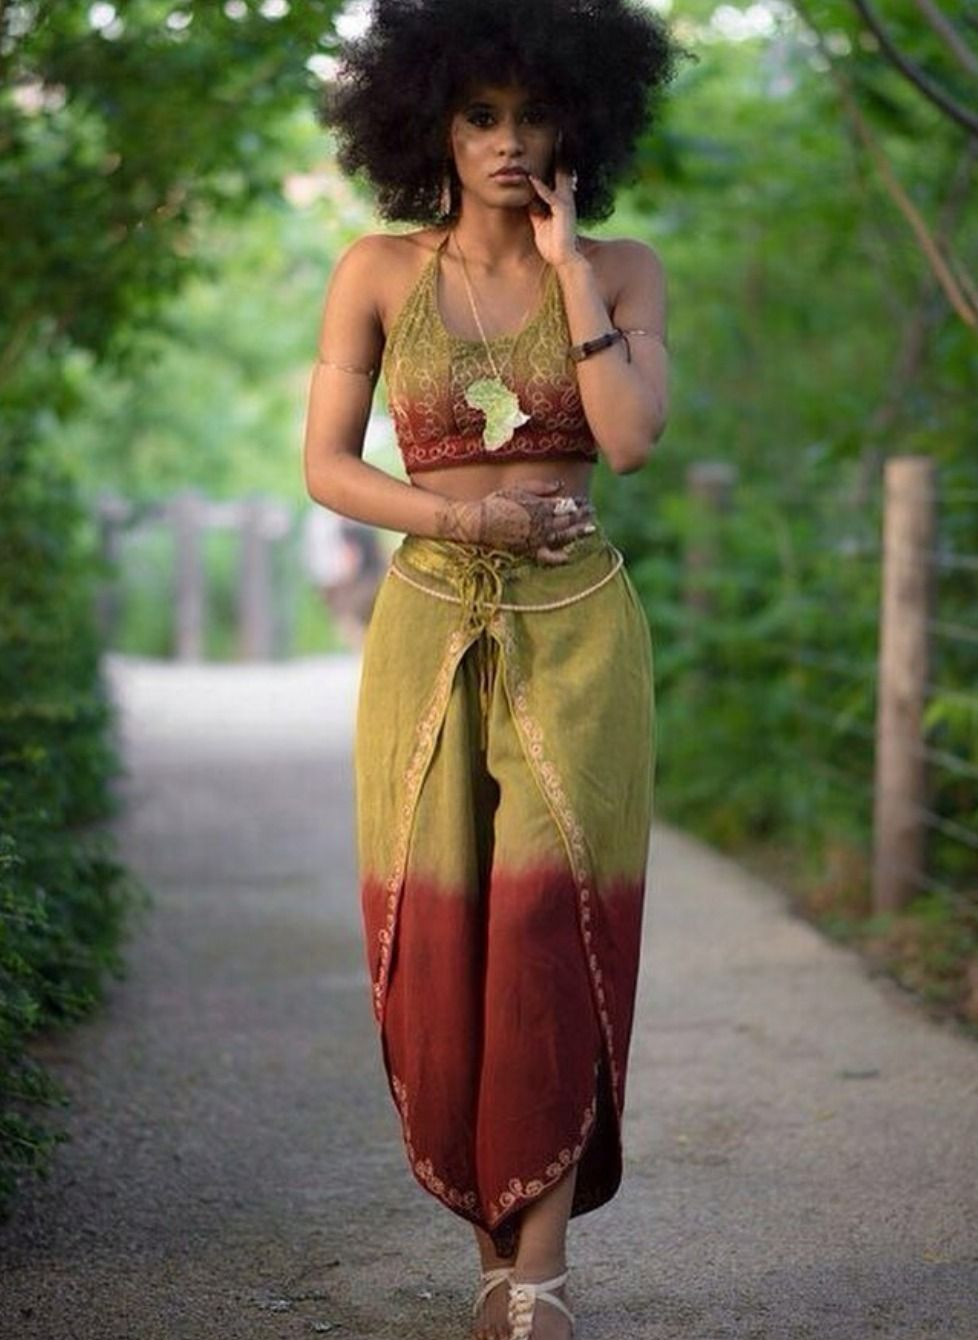 Pin by mikayla moore on jah pinterest african fashion africans